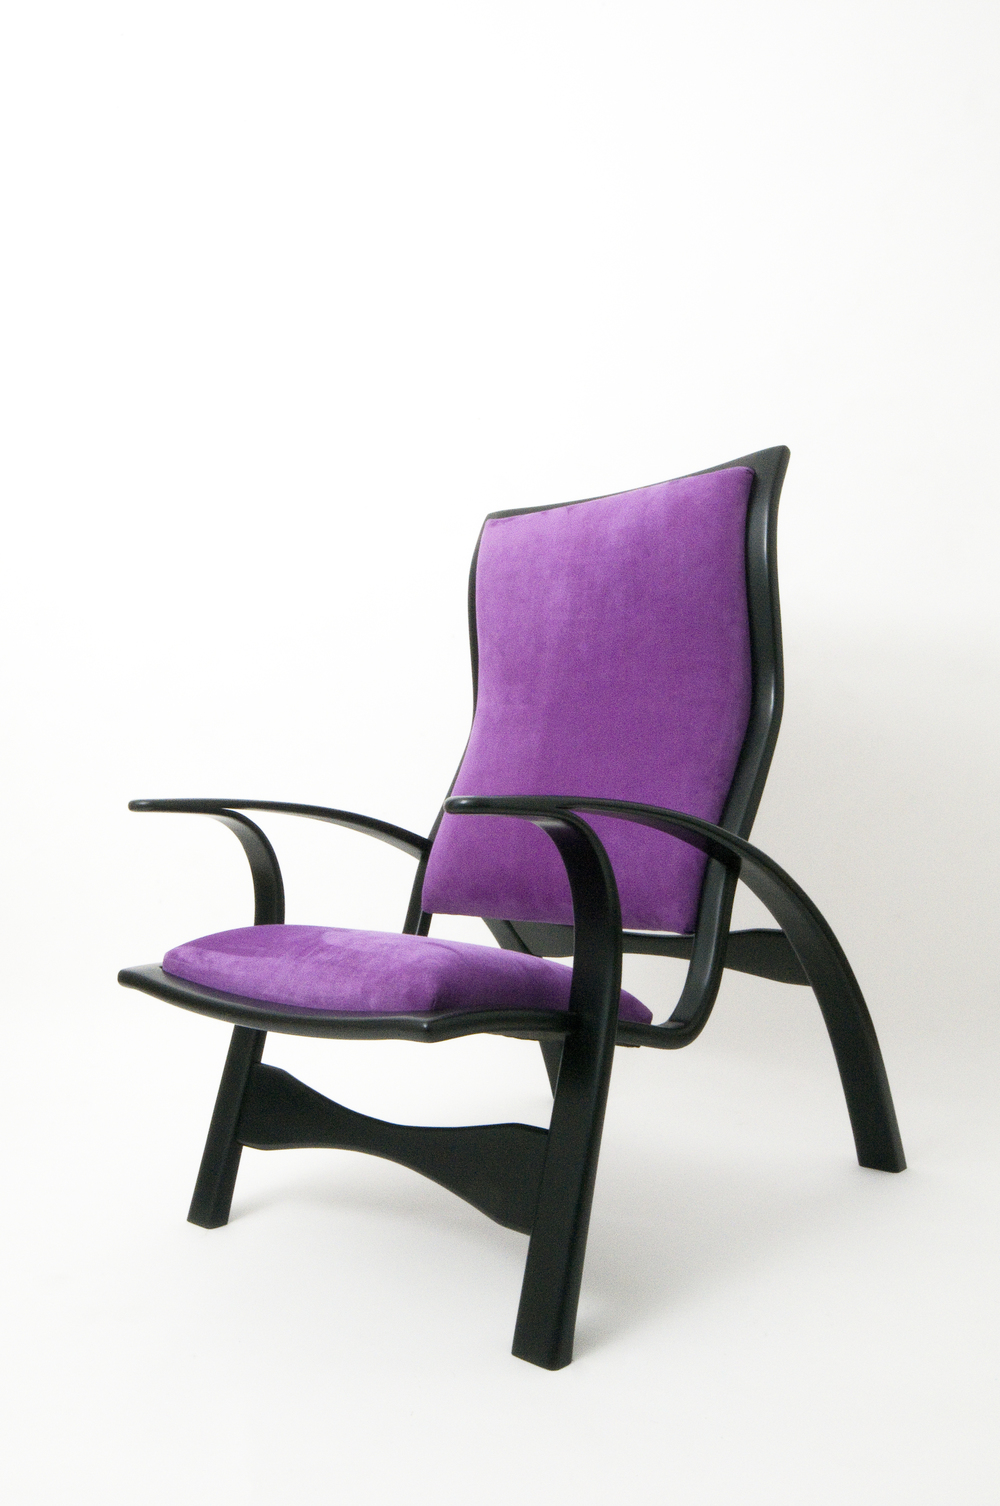 Crown royal chair2.jpg